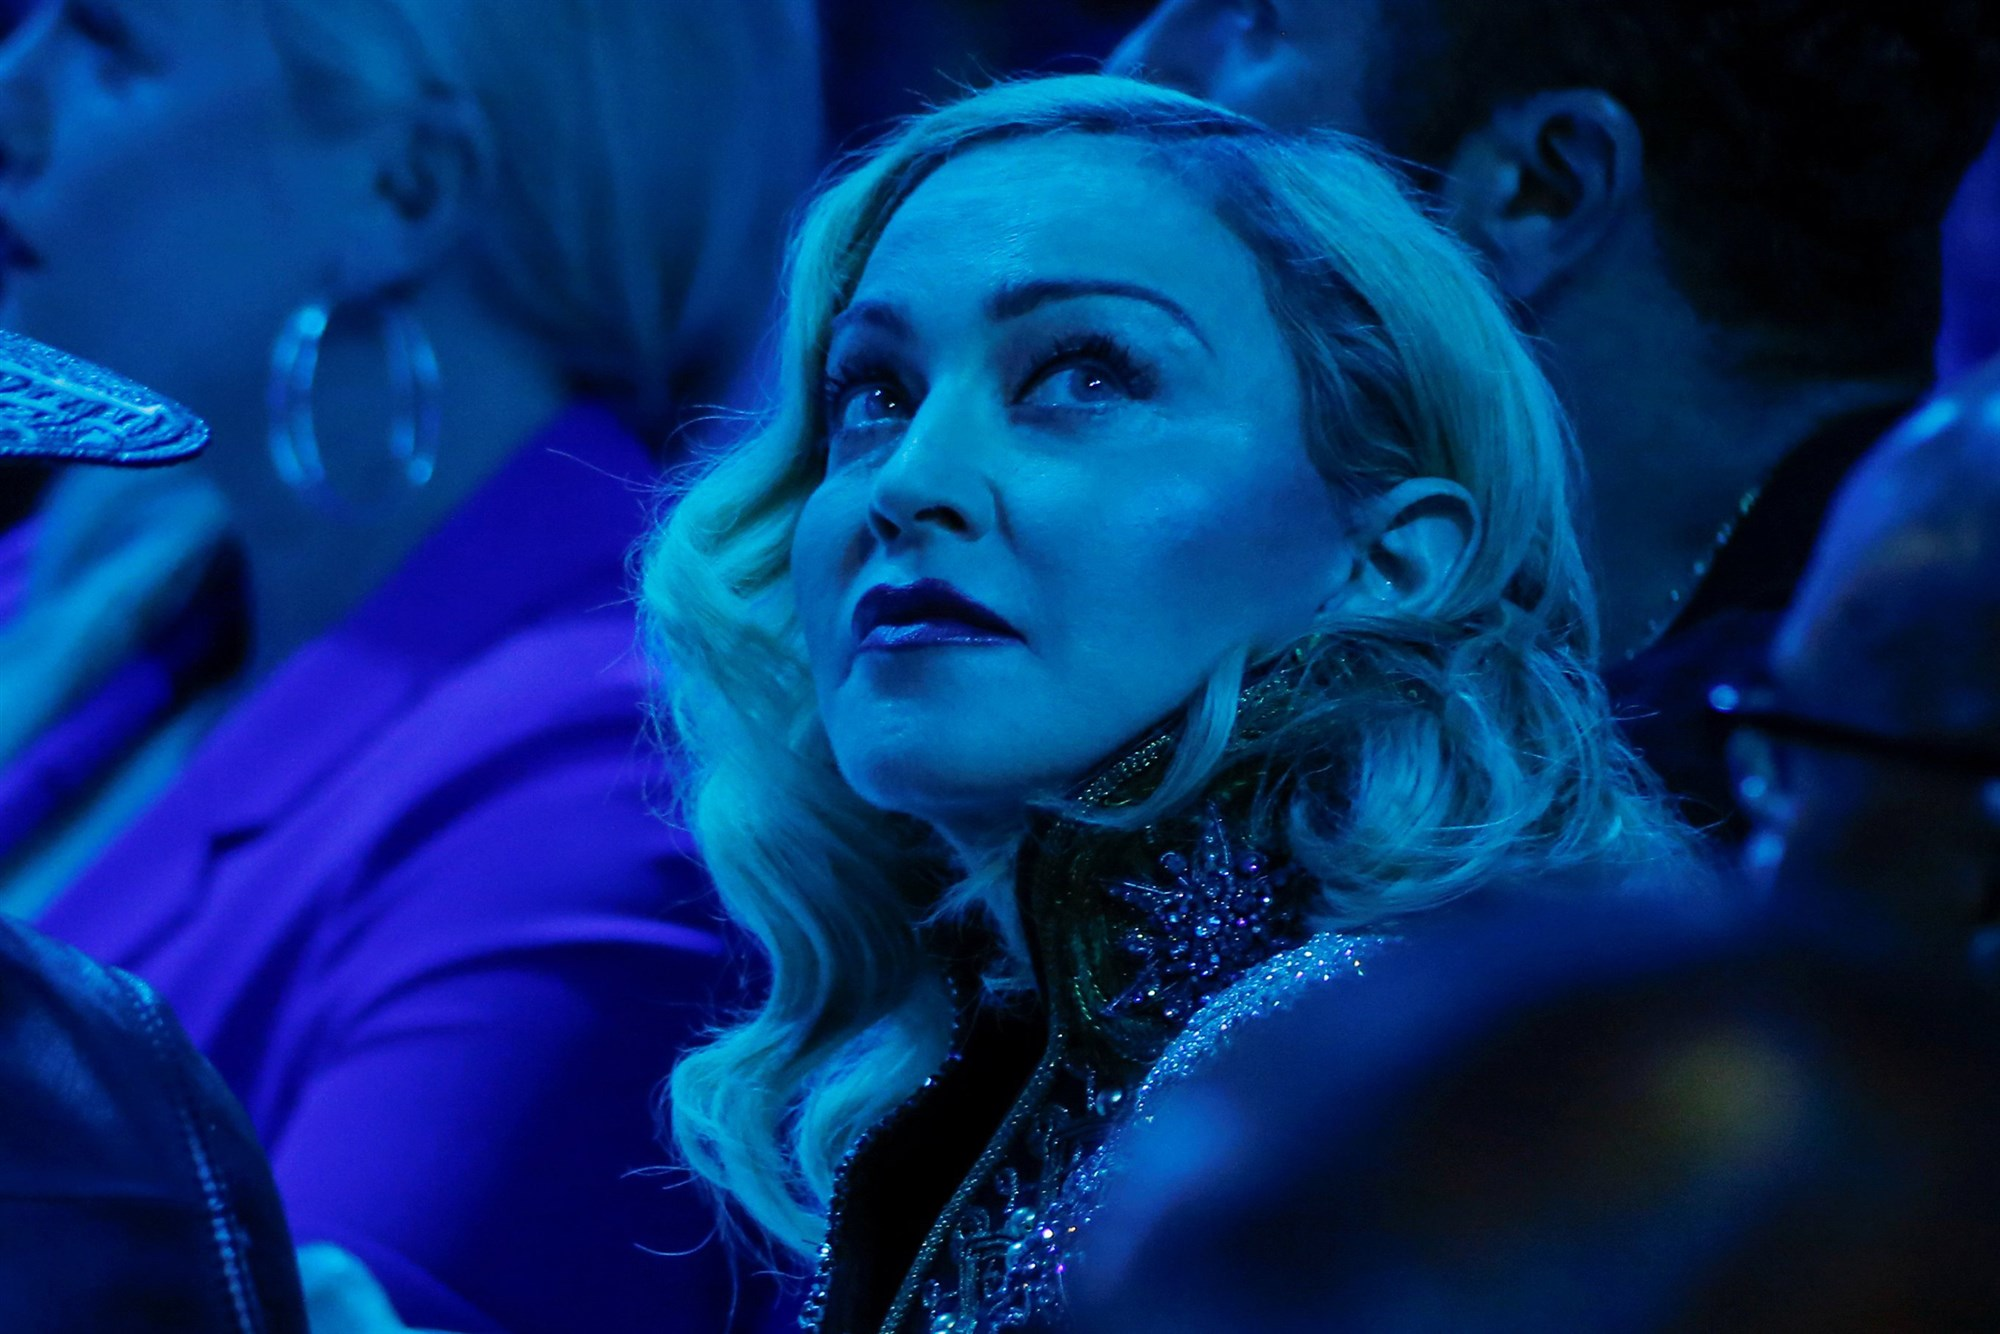 Madonna spoke to me after she delivered an emotional acceptance speech at the 30th annual GLAAD Media Awards, where she received the Advocate for Change award.